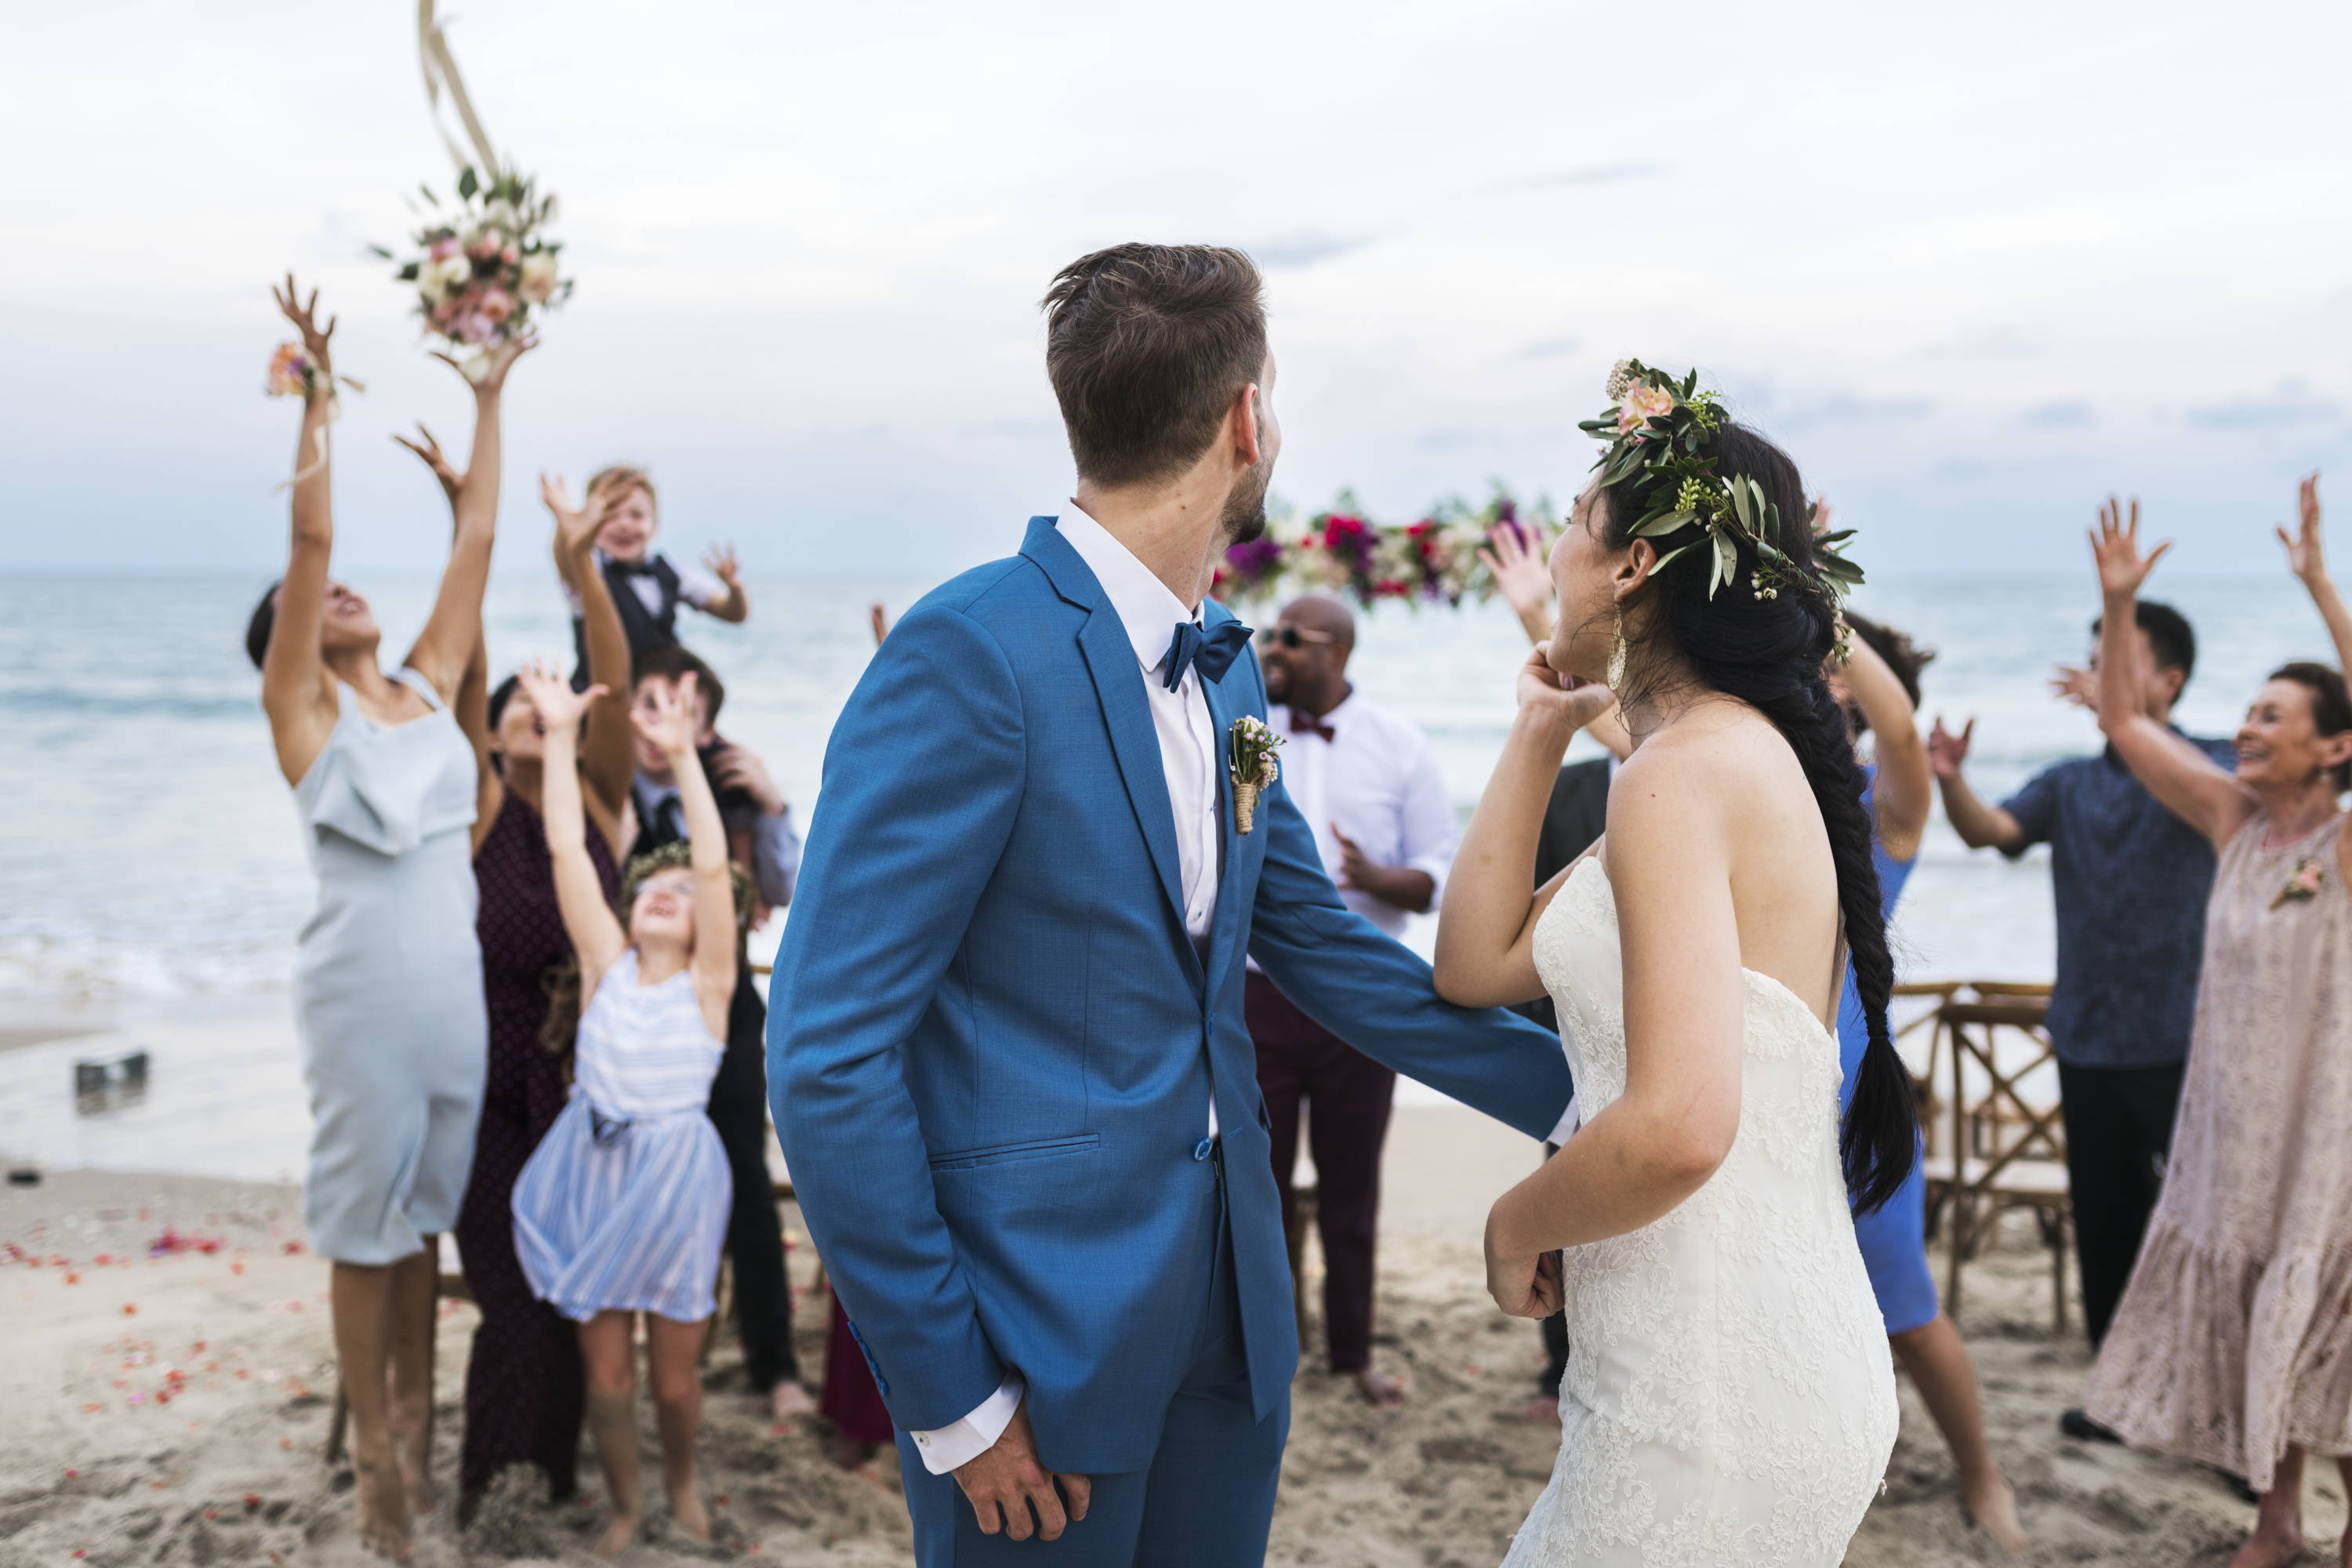 Wedding couple on beach throwing floral bouquet